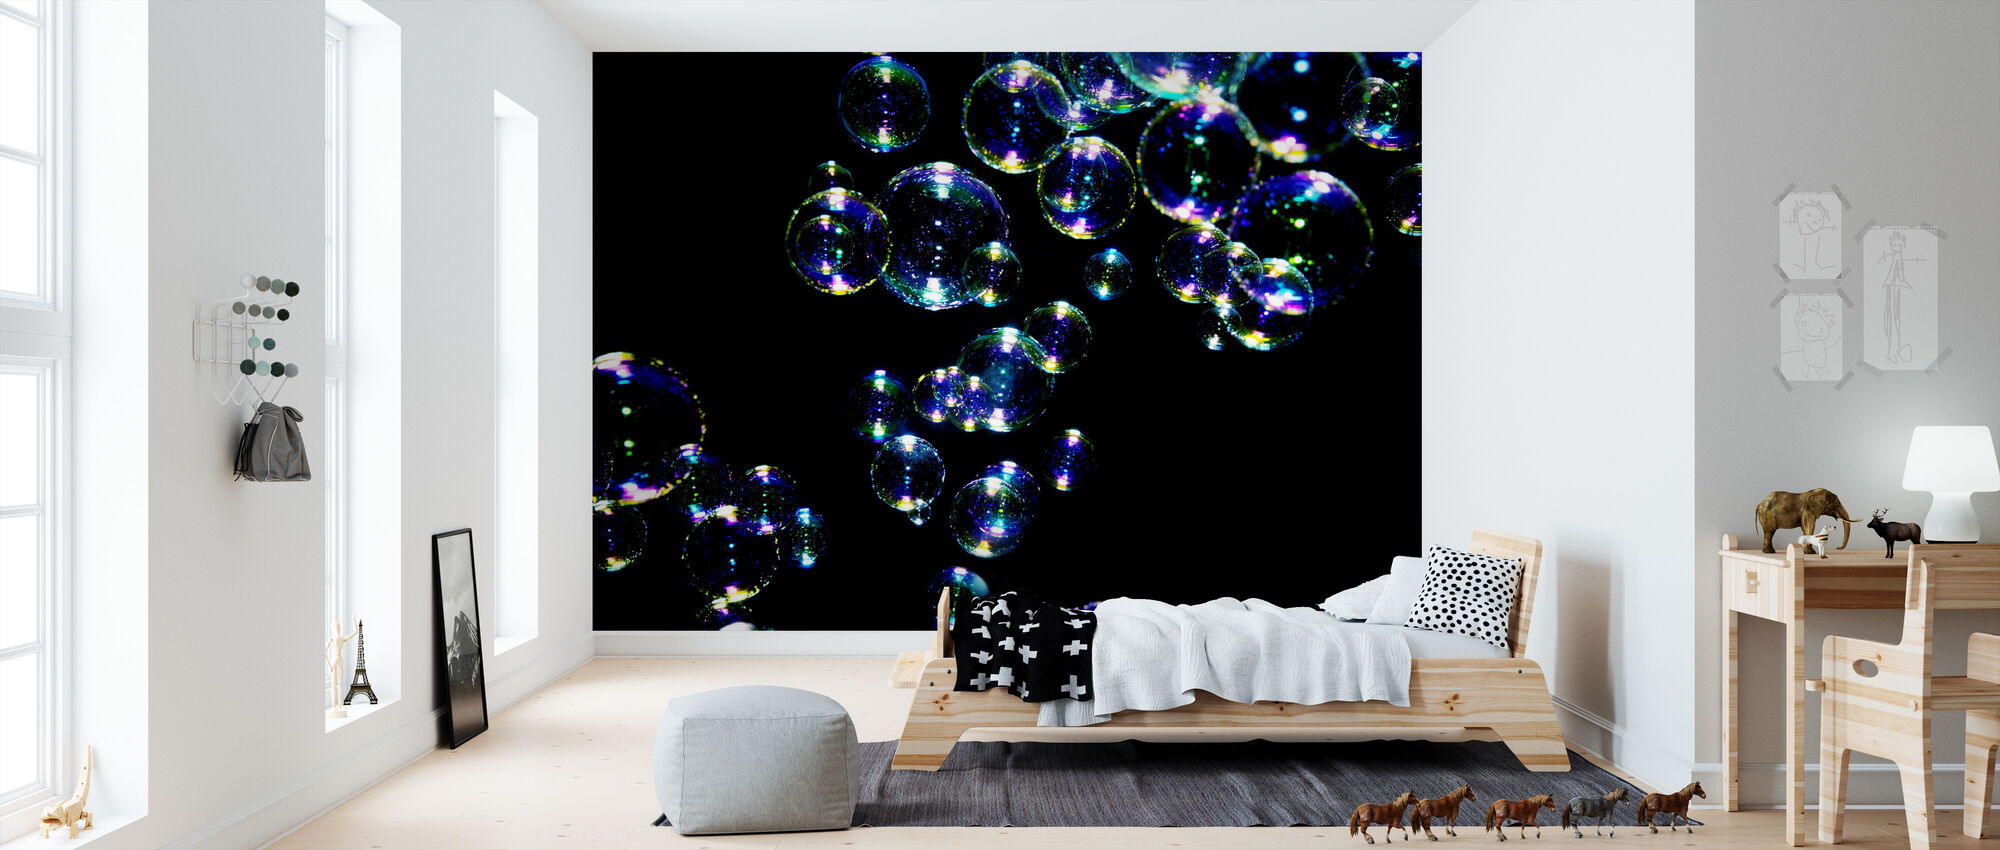 Glistening Bubbles - Wallpaper - Kids Room